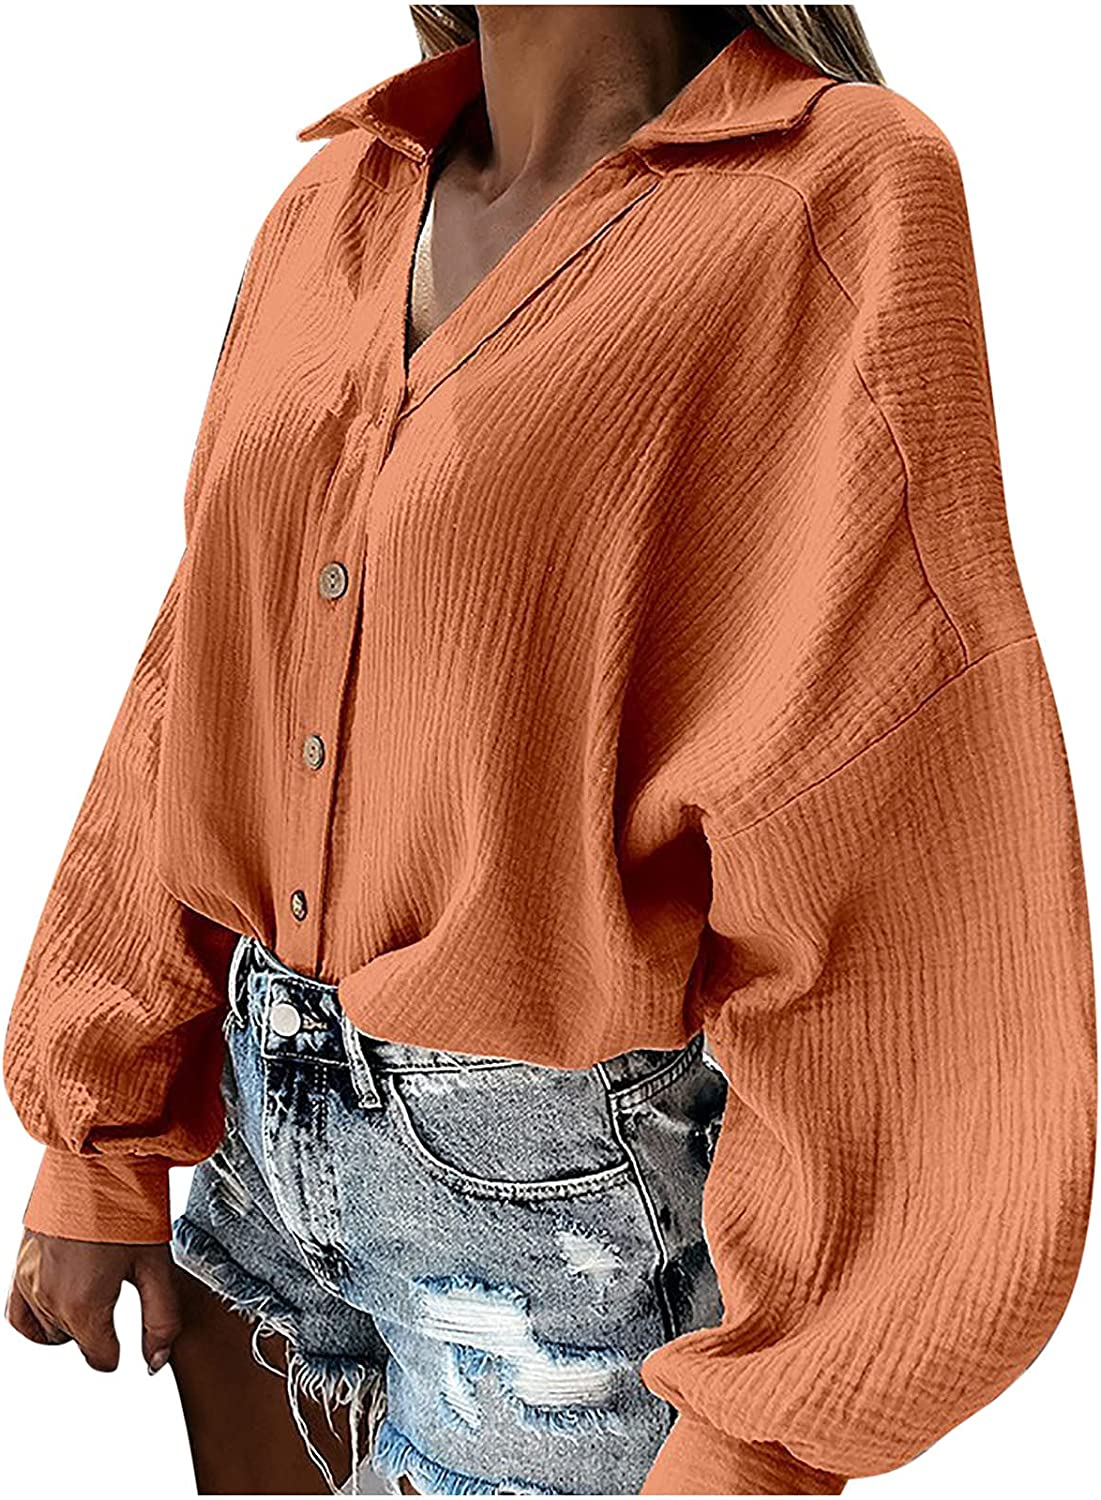 Women Large special Directly managed store price Business Casual Tops Solid V-Neck Button Fas Cardigan Down